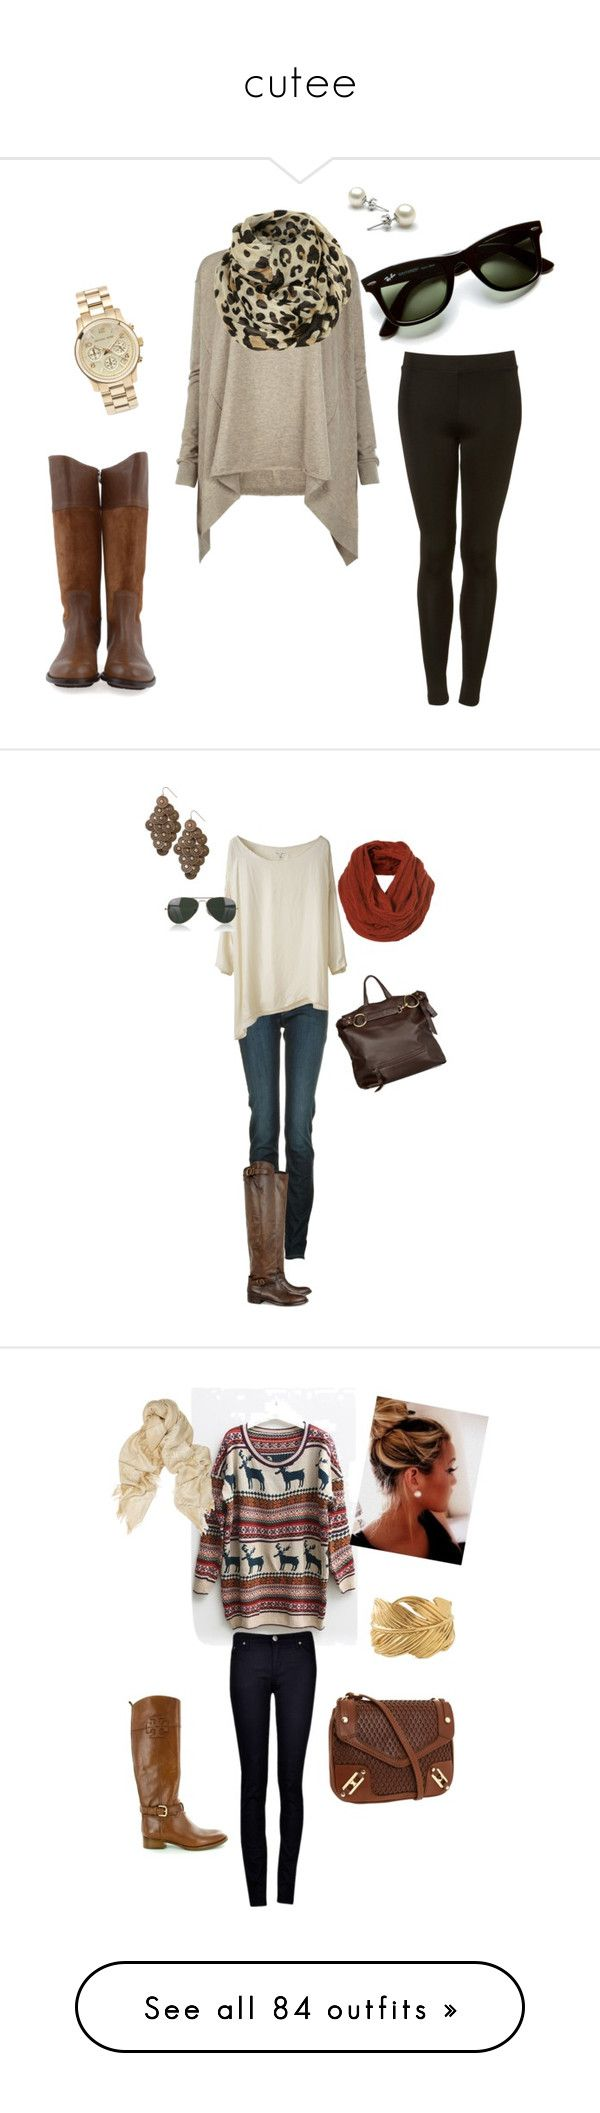 """cutee"" by annie-christian ❤ liked on Polyvore featuring AllSaints, Ray-Ban, Objects in Mirror, Michael Kors, leopard print, riding boots, printed scarves, leggings, Armani Jeans and Belstaff"